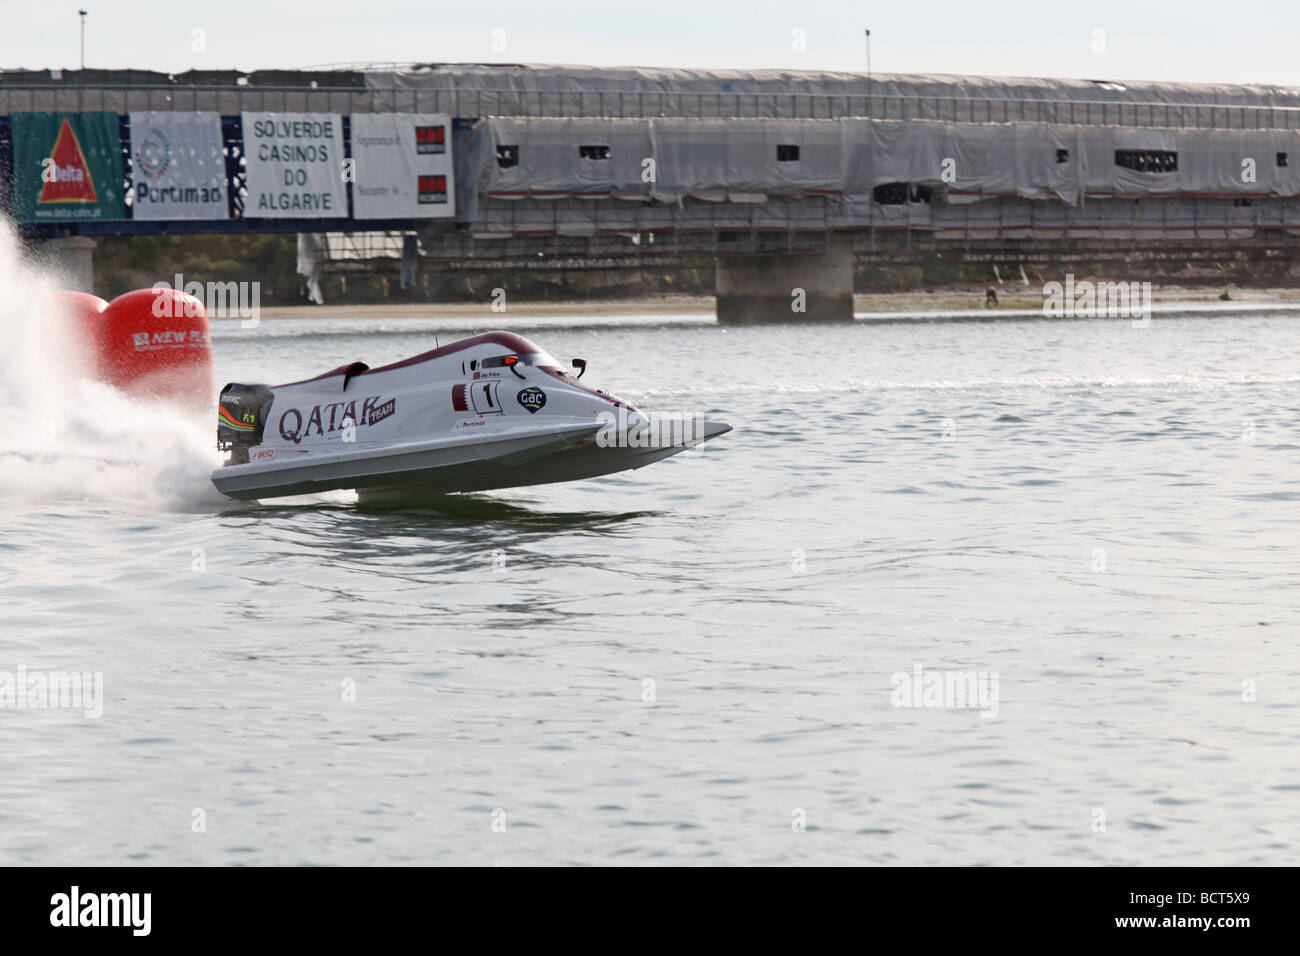 F1 Powerboat Grand Prix of Portugal - Stock Image